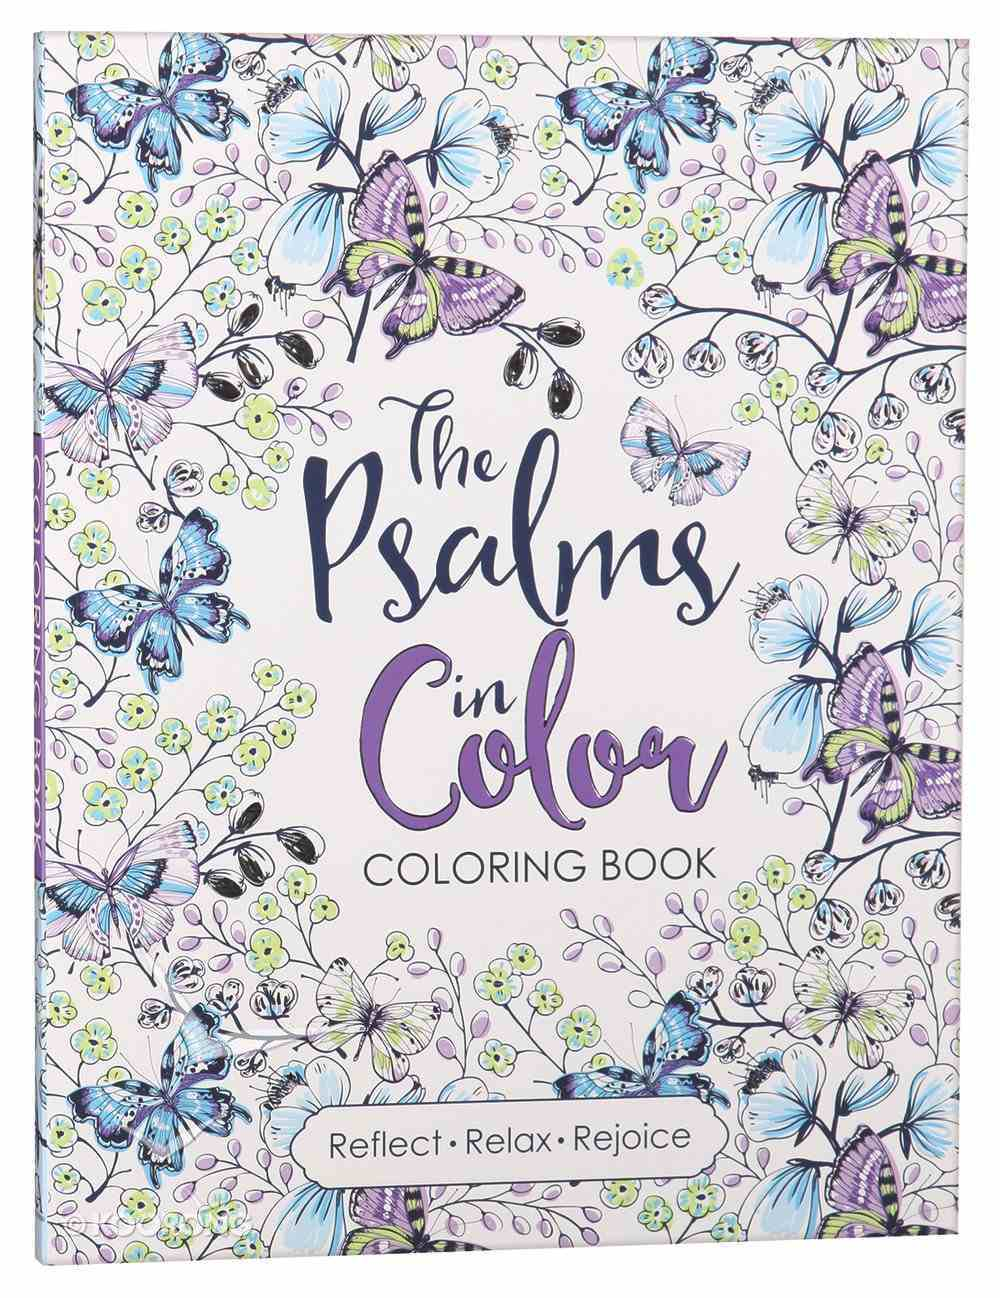 The Psalms in Color (Adult Coloring Books Series) Paperback